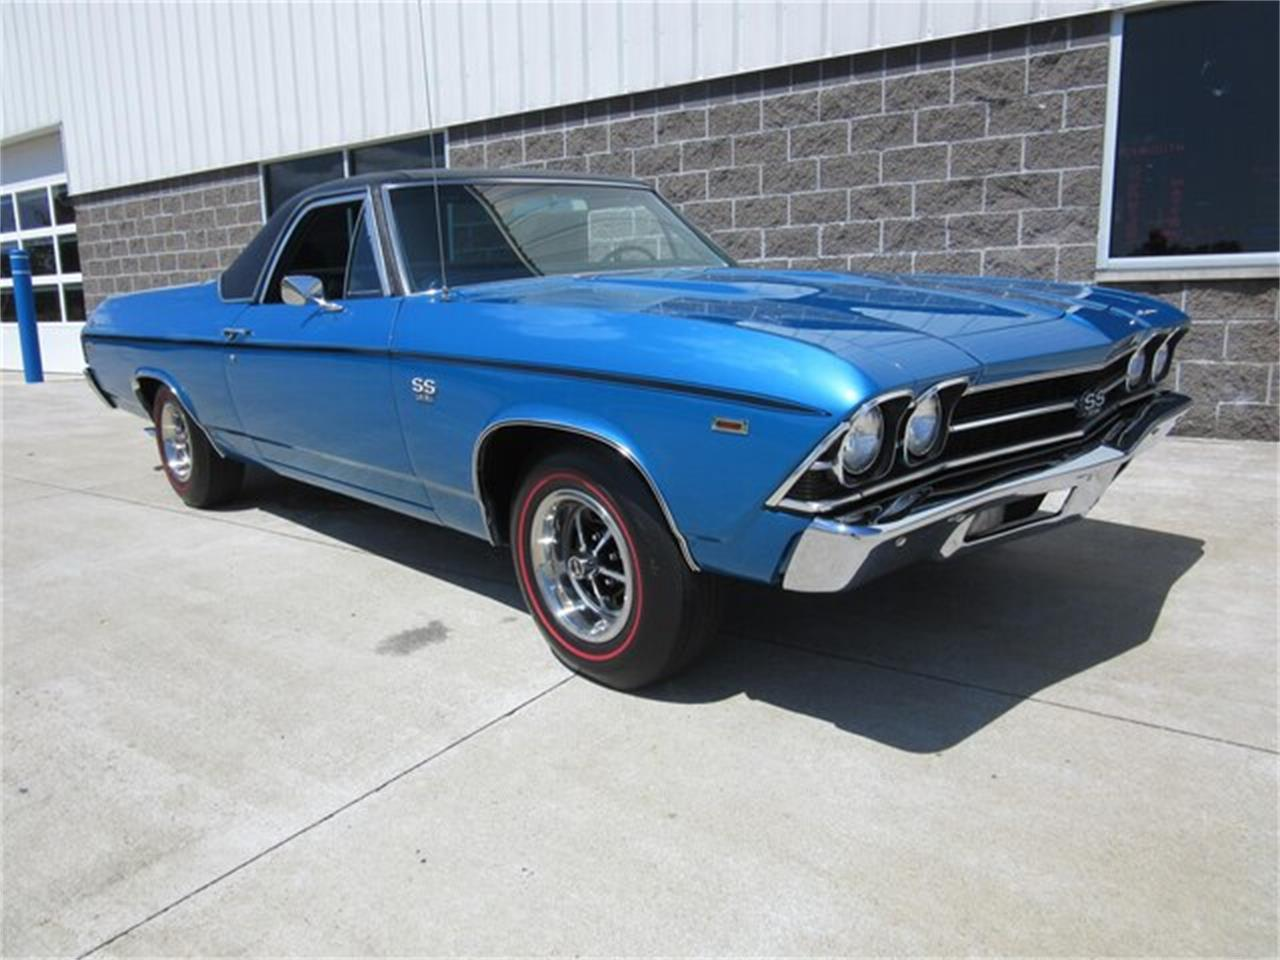 Large Picture of 1969 El Camino located in Greenwood Indiana Offered by Ray Skillman Classic Cars - QTRB